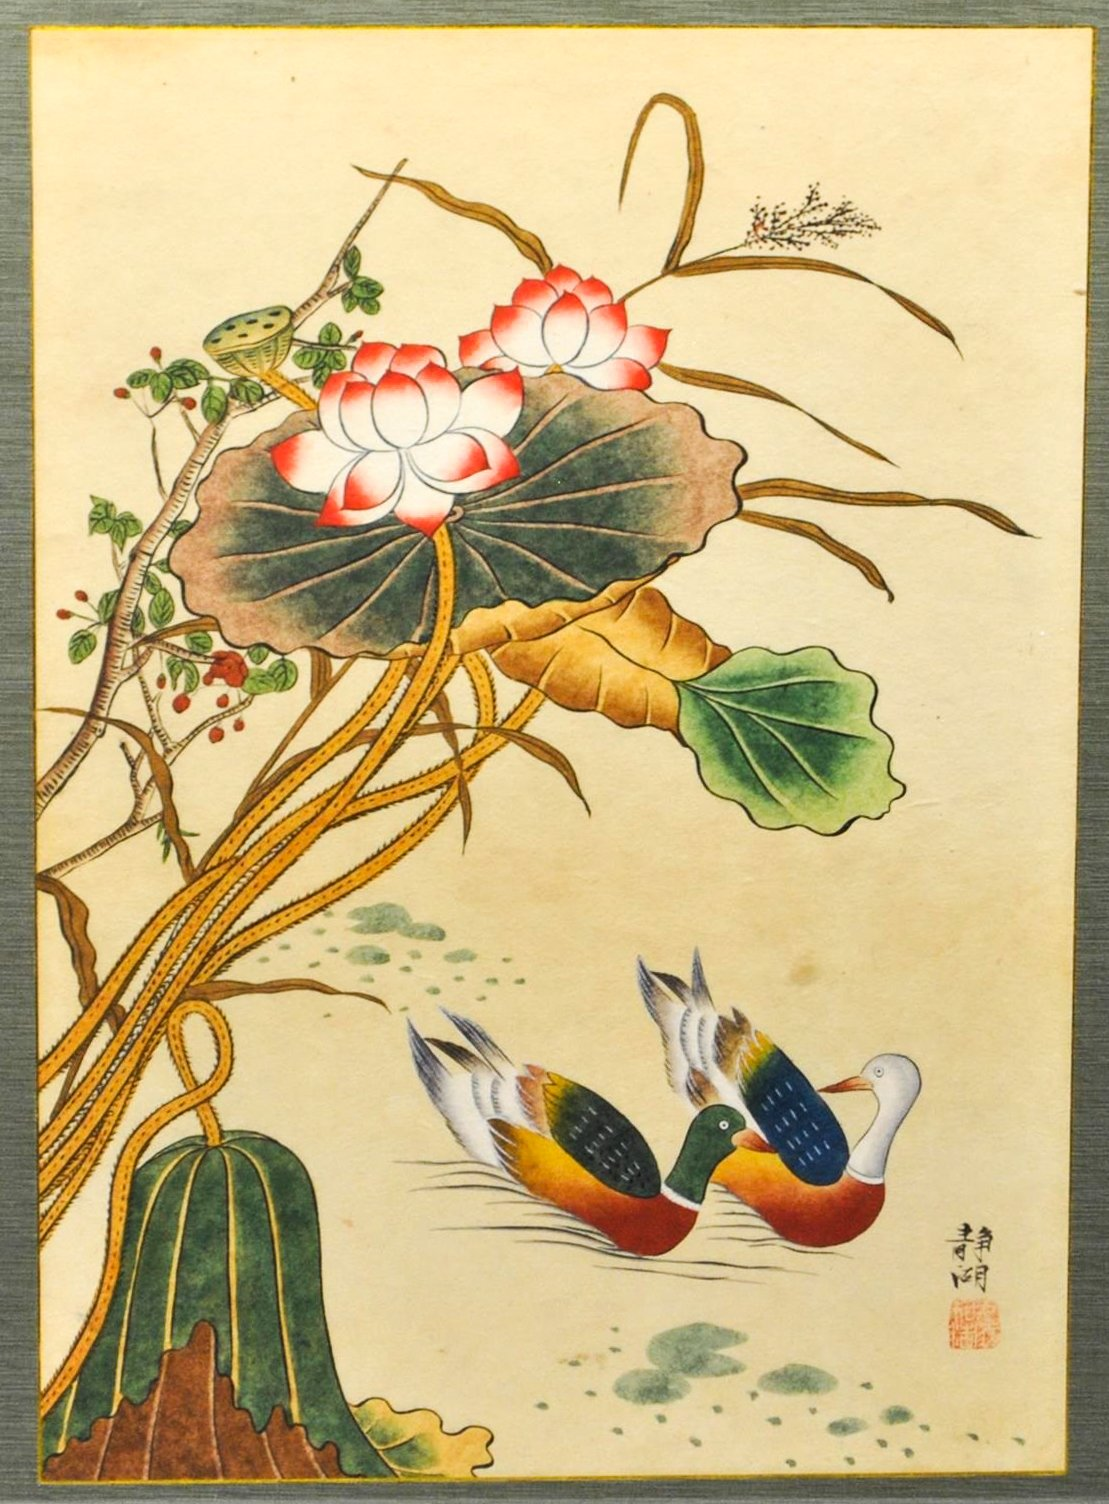 Two Swimming Ducks - Japanese Woodblock Print